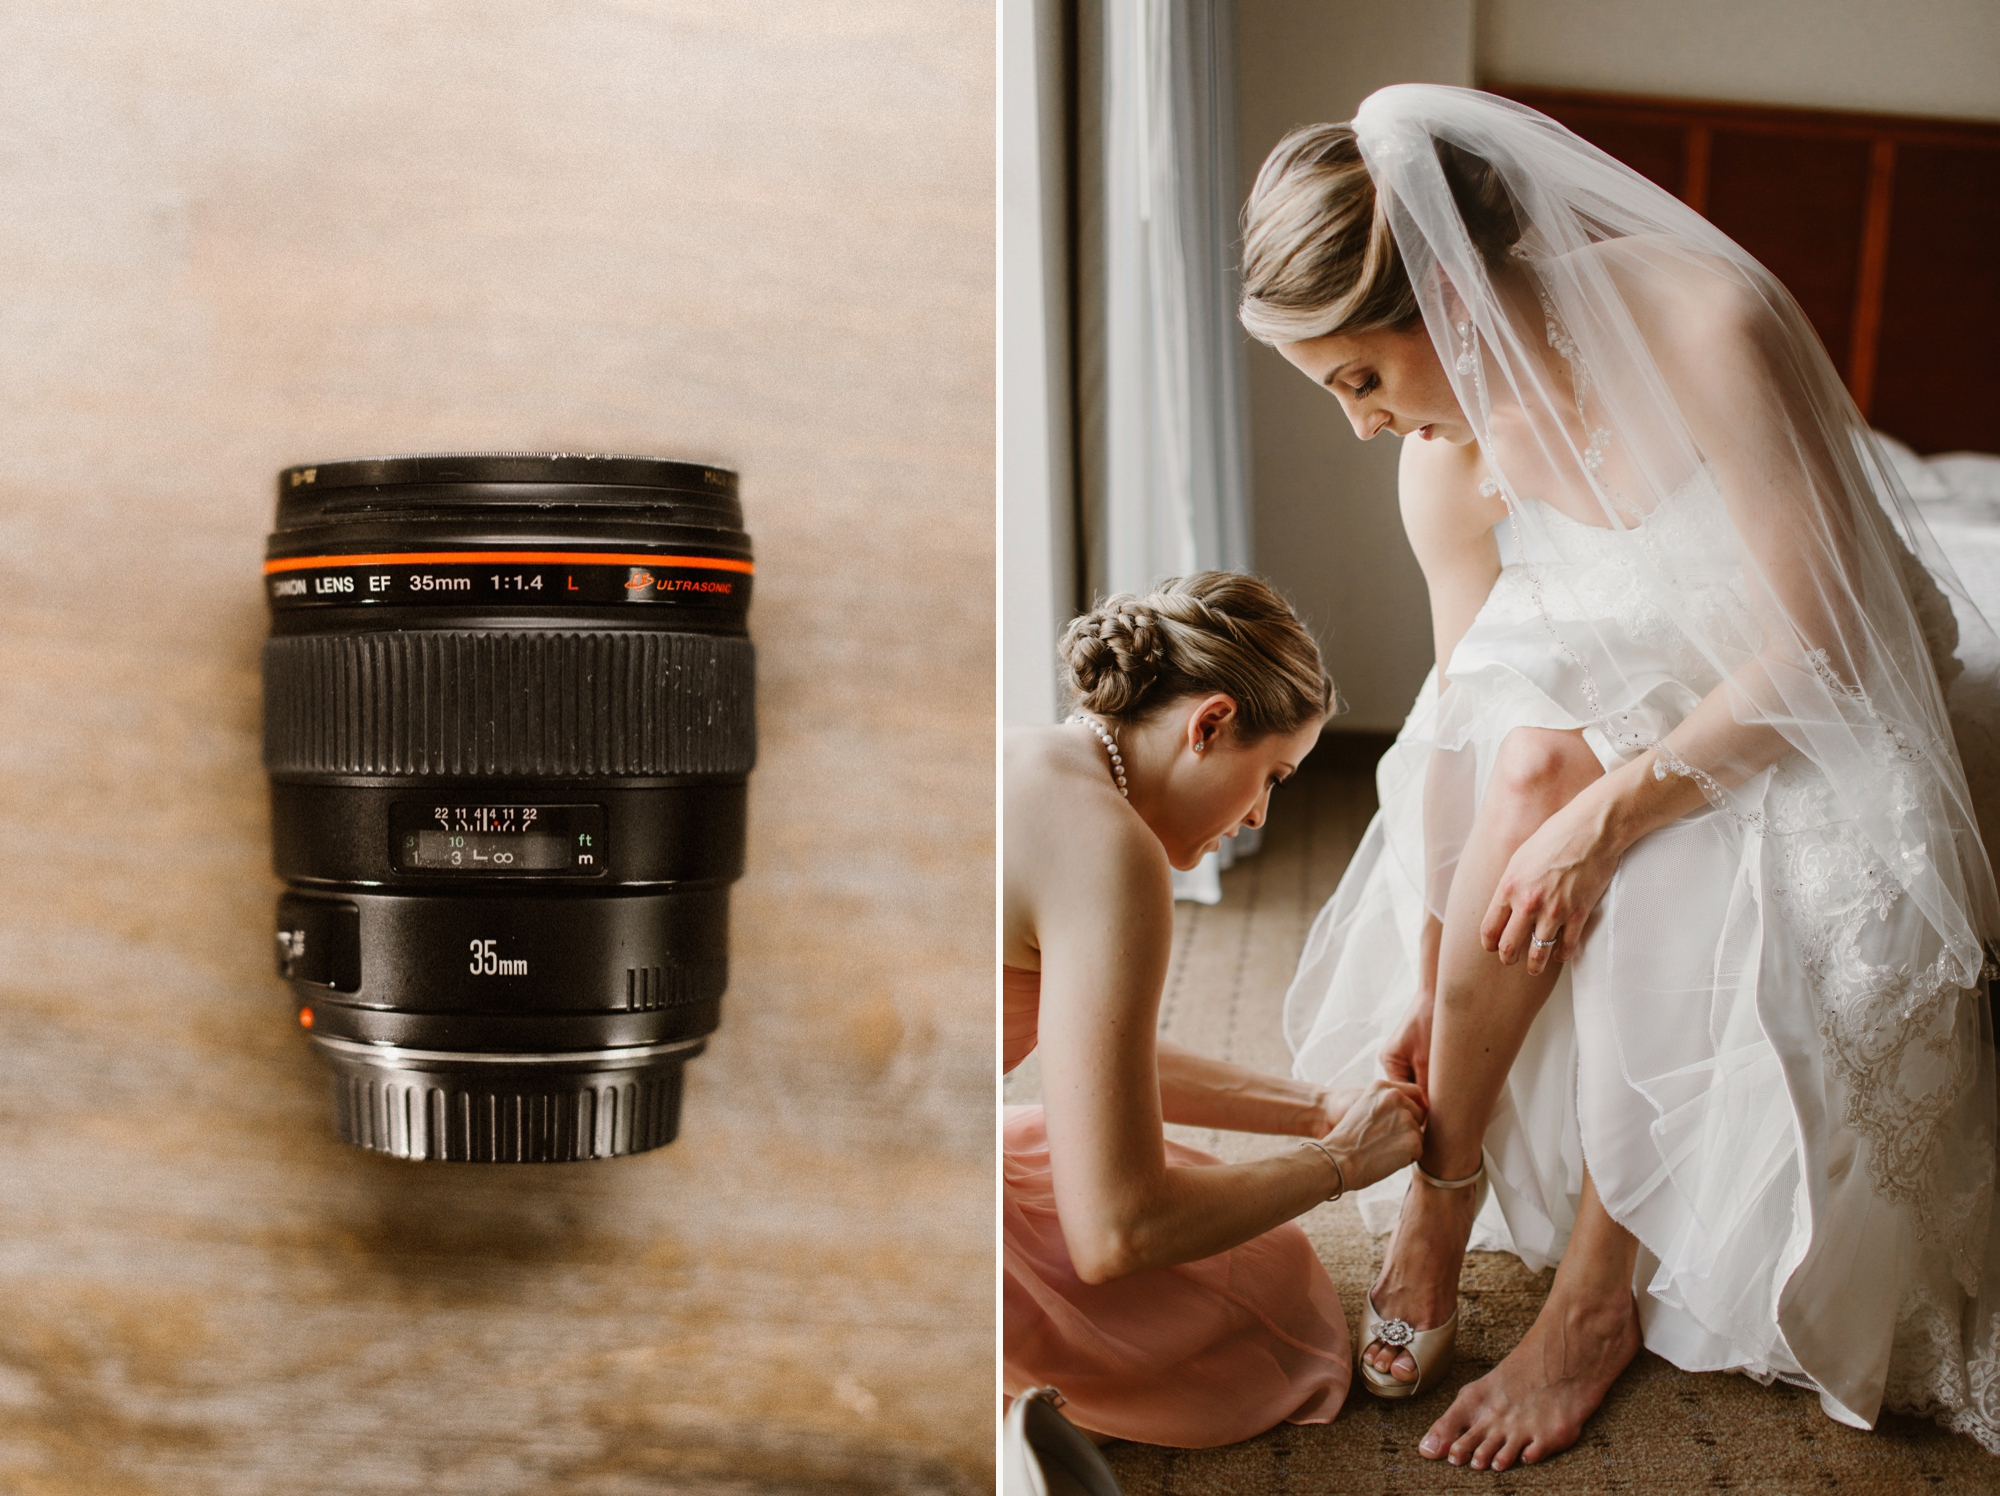 kates-gear-2017-6_canon-5d-mark-iv-gear-bag-baltimore-annapolis-washington-d-c-maryland-wedding-photographer-earthy-boho-kate-ann-photography-photo